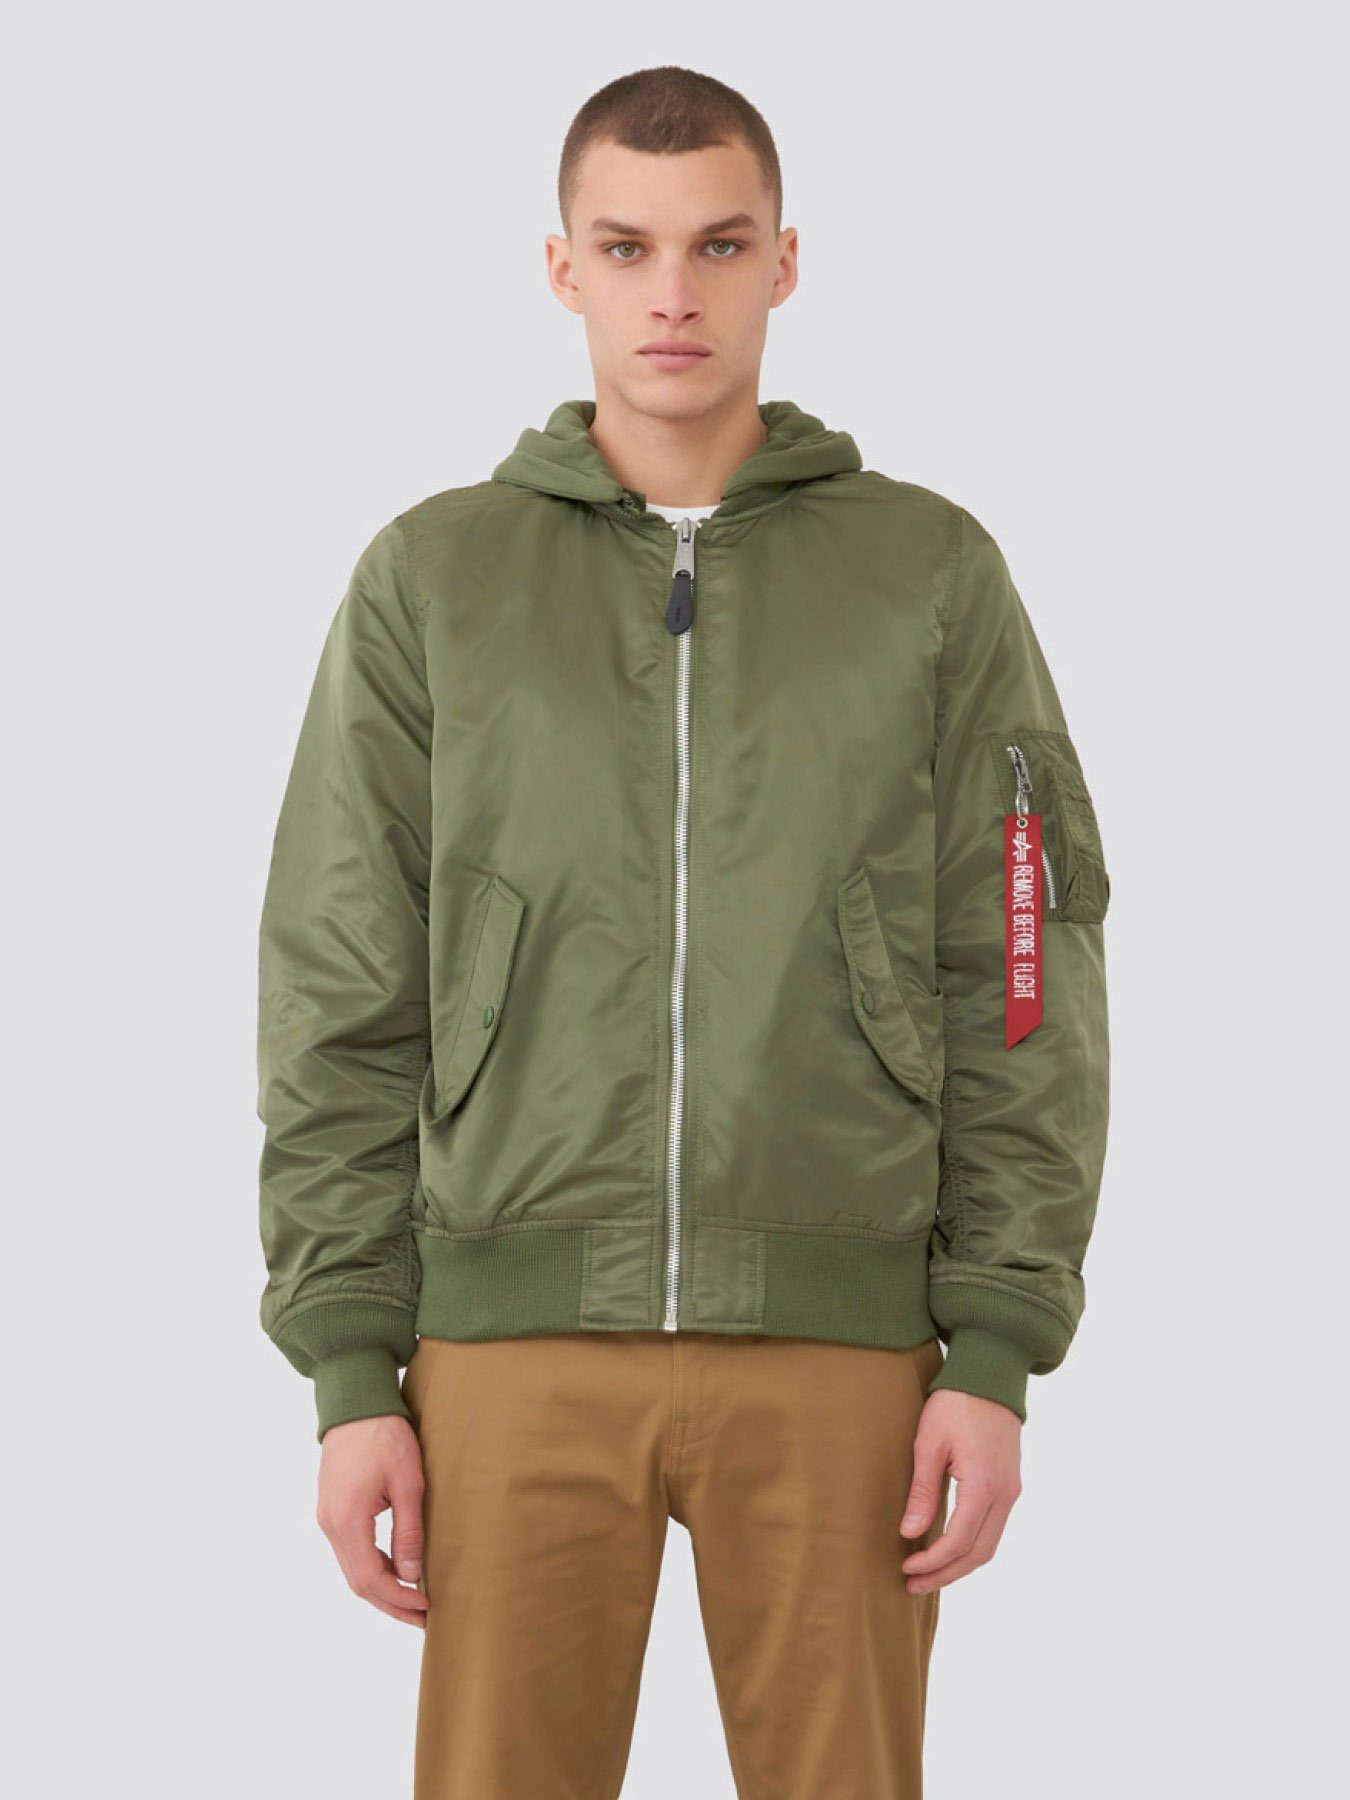 L-2B NATUS MEN'S BOMBER JACKET OUTERWEAR Alpha Industries SAGE 2XL